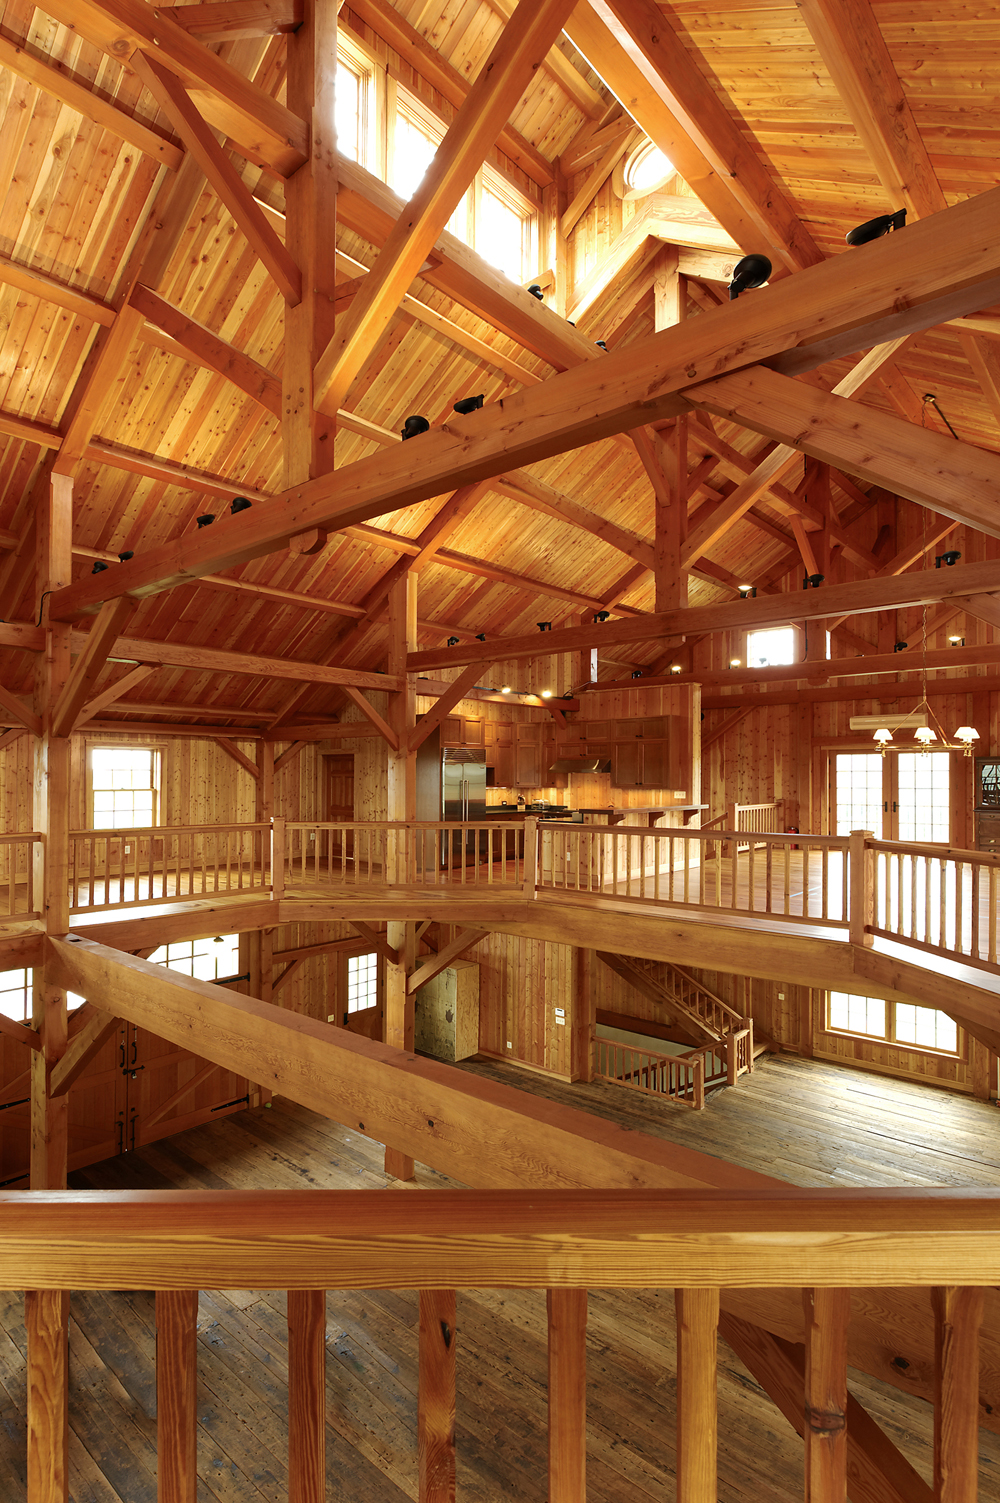 Timber Frame Garage >> Garages Photo Gallery | BOWA | Design Build Renovations